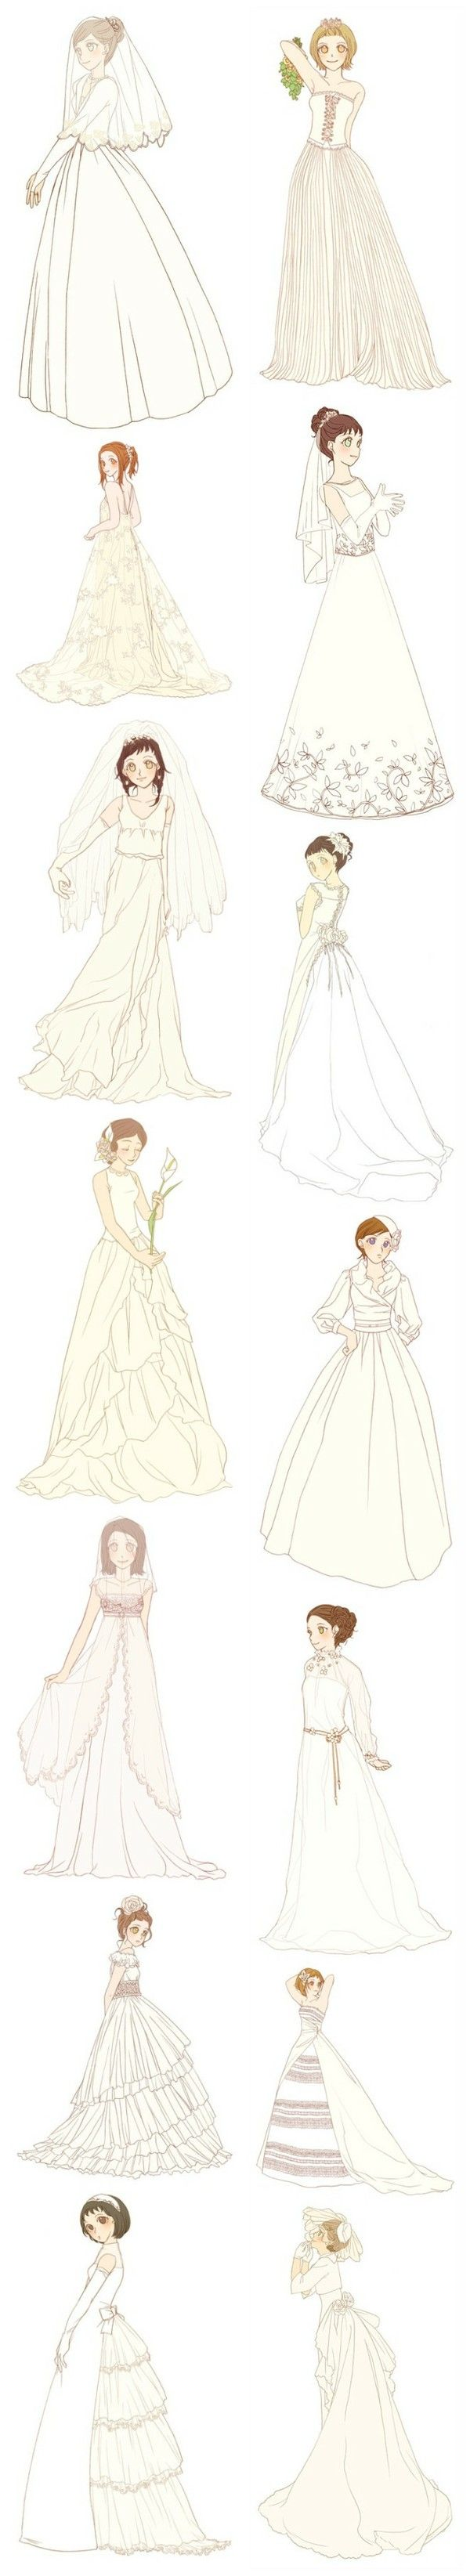 Anime Girls Wearing Wedding Dresses Gowns Reference For Artists Anime Dress Costume Design Fashion Illustration